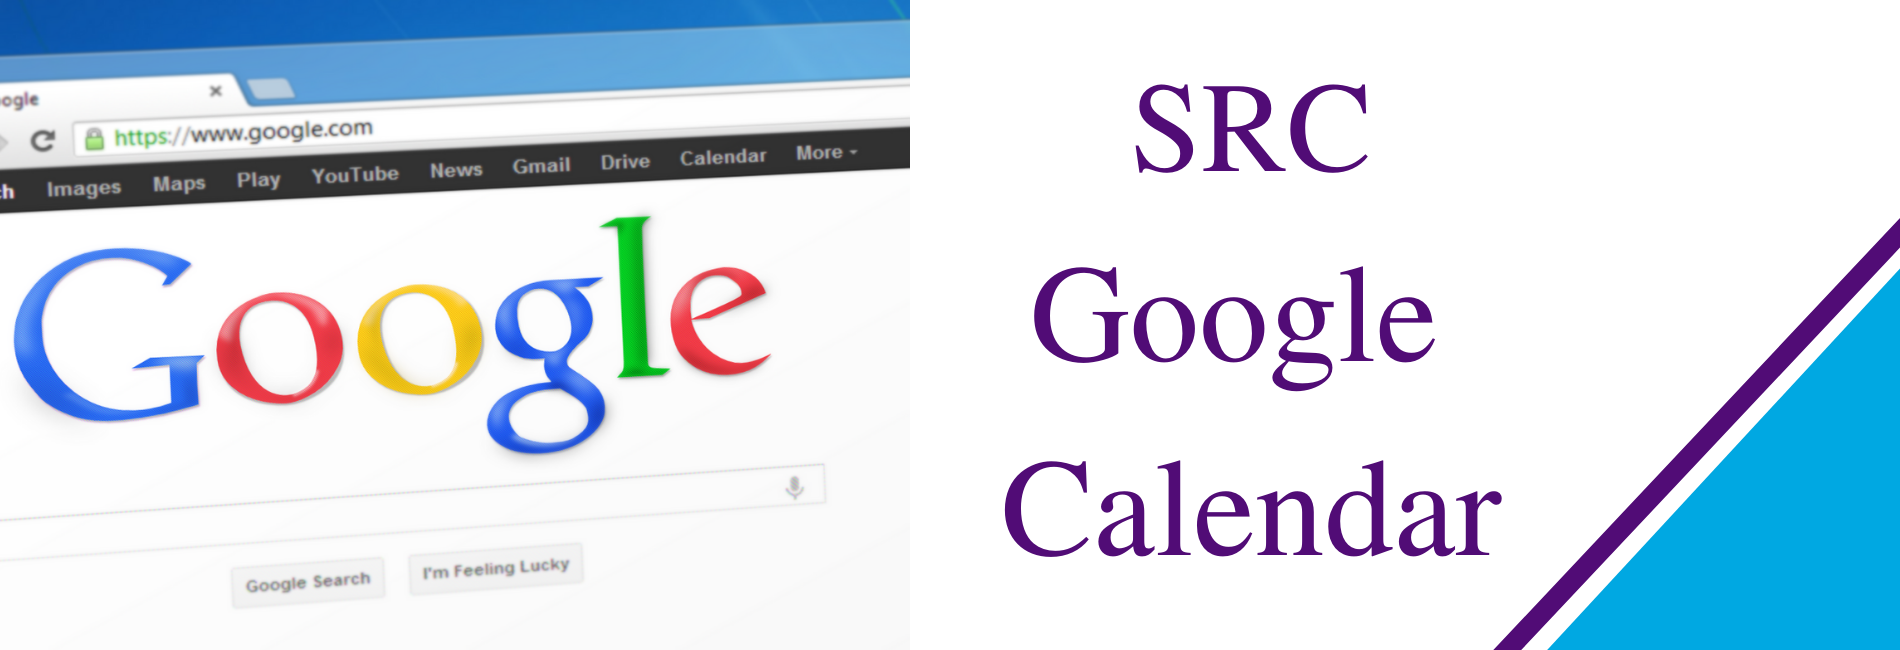 Add our Google Calendar to yours. Turn ON & OFF for convenience.